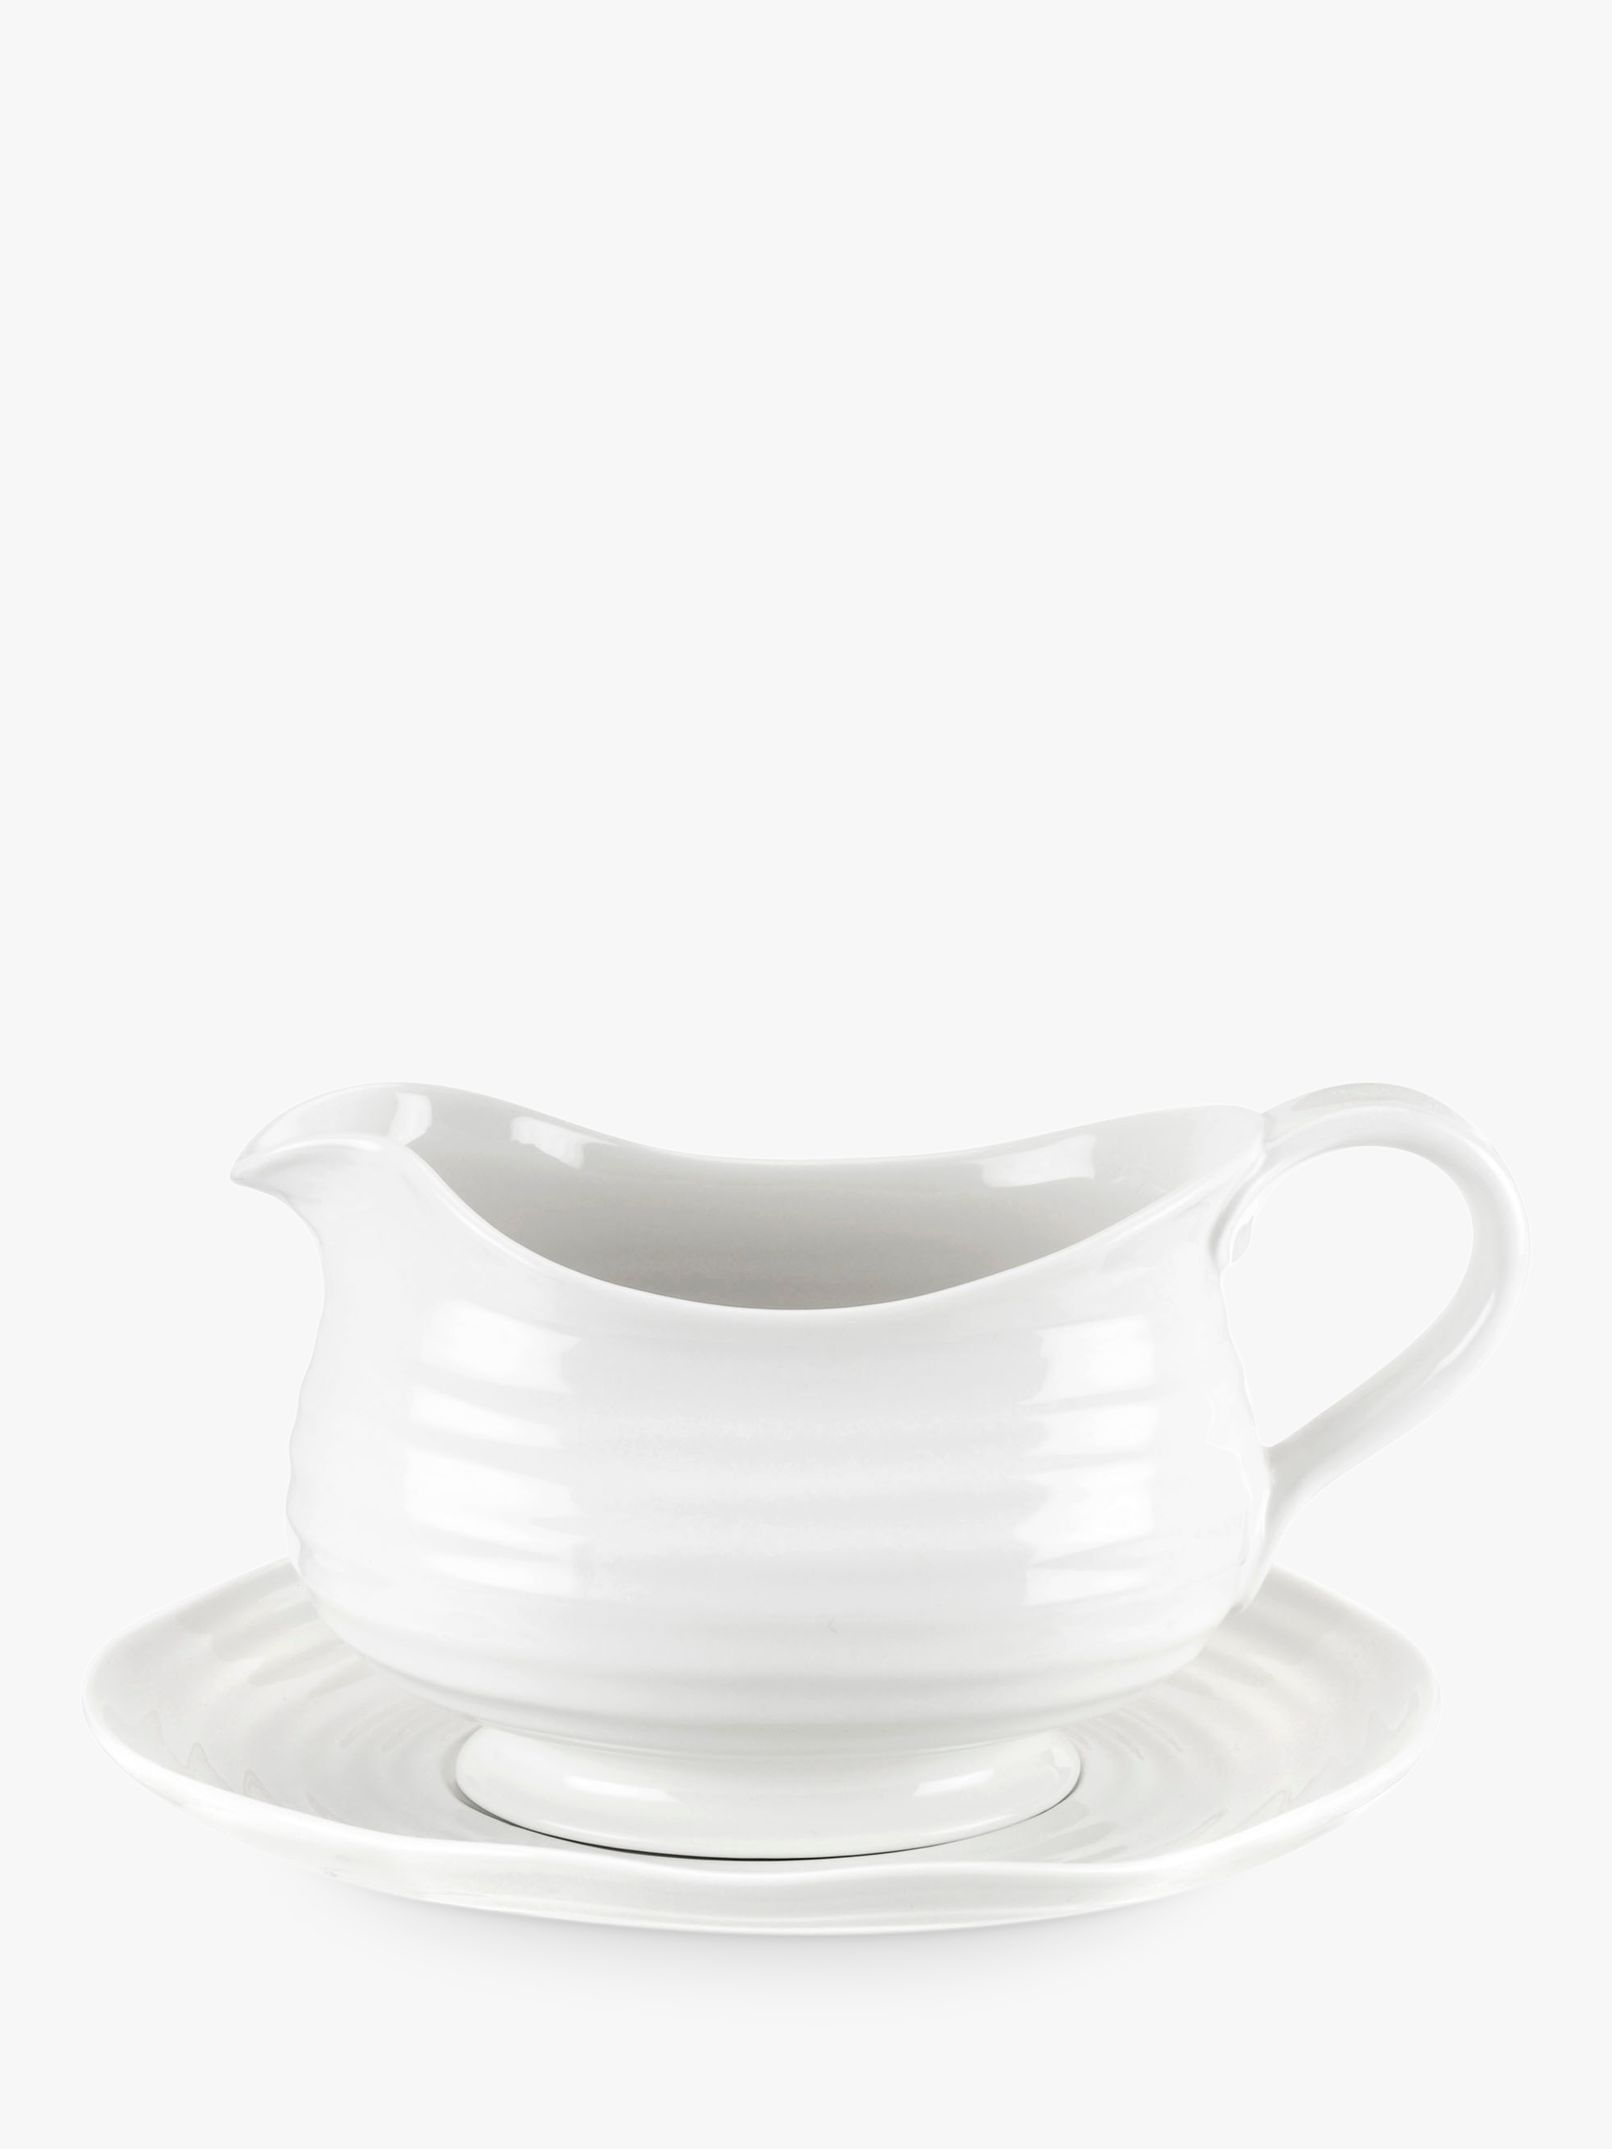 Sophie Conran for Portmeirion Sophie Conran for Portmeirion Sauce Boat and Stand